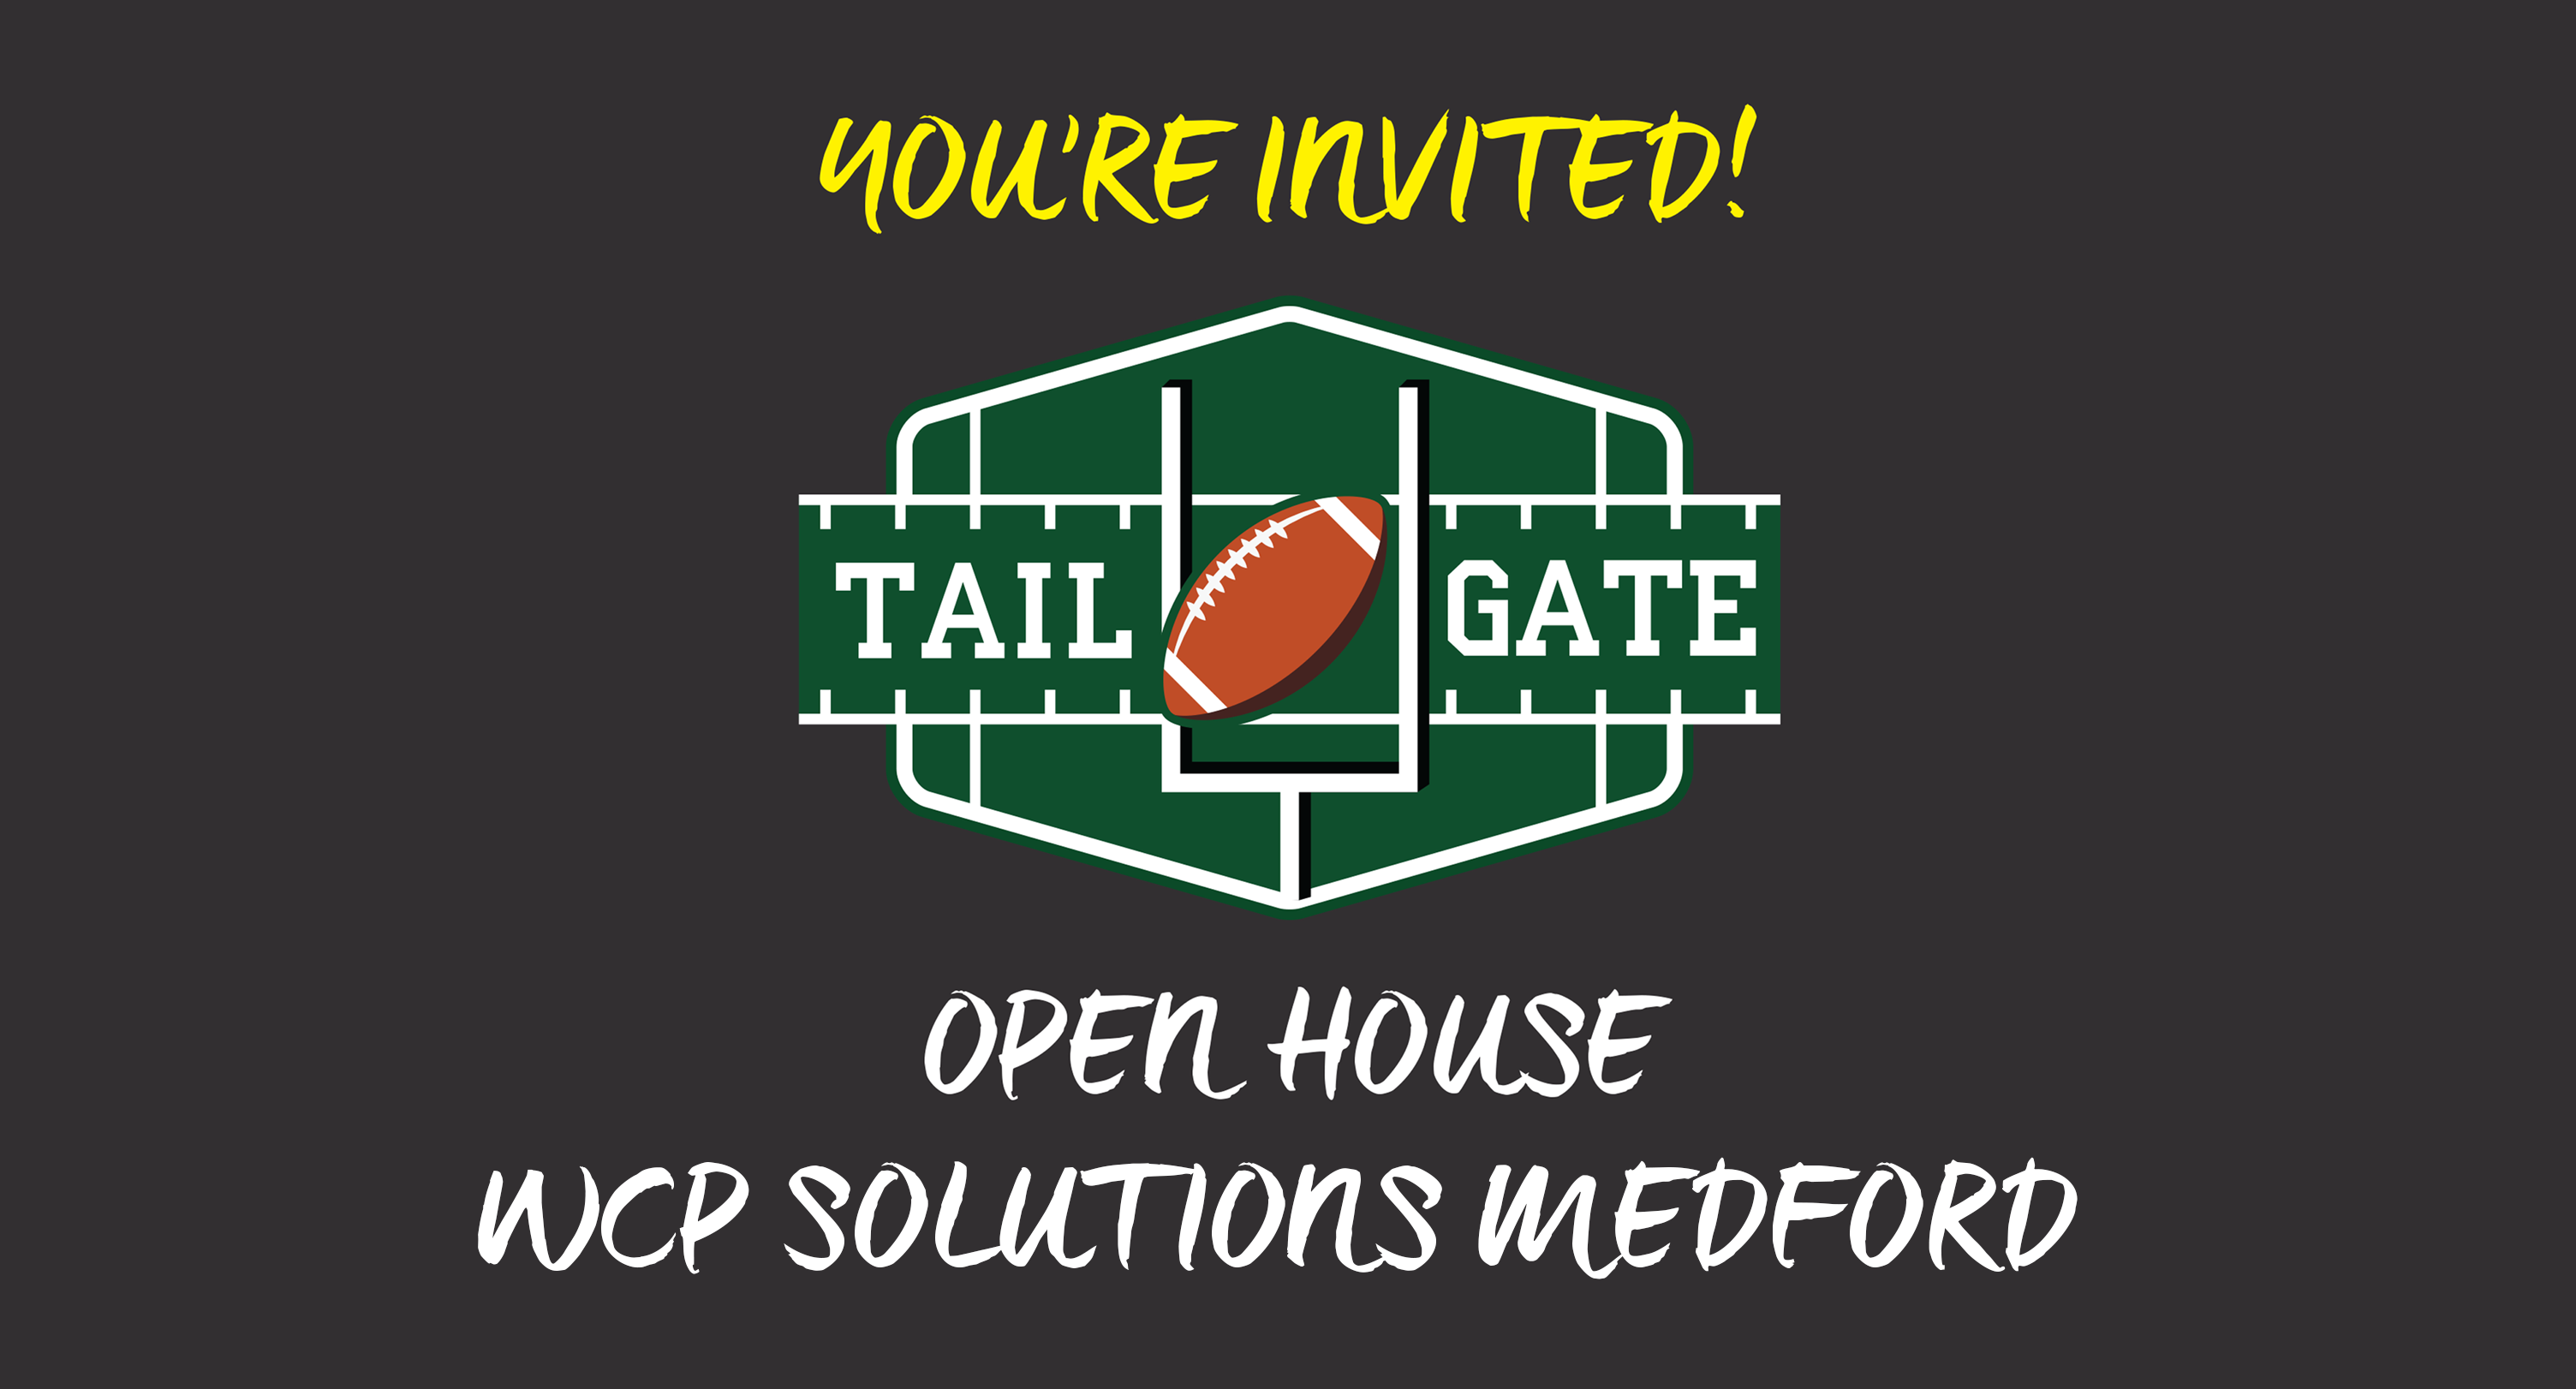 WCP Medford Open House Invitation